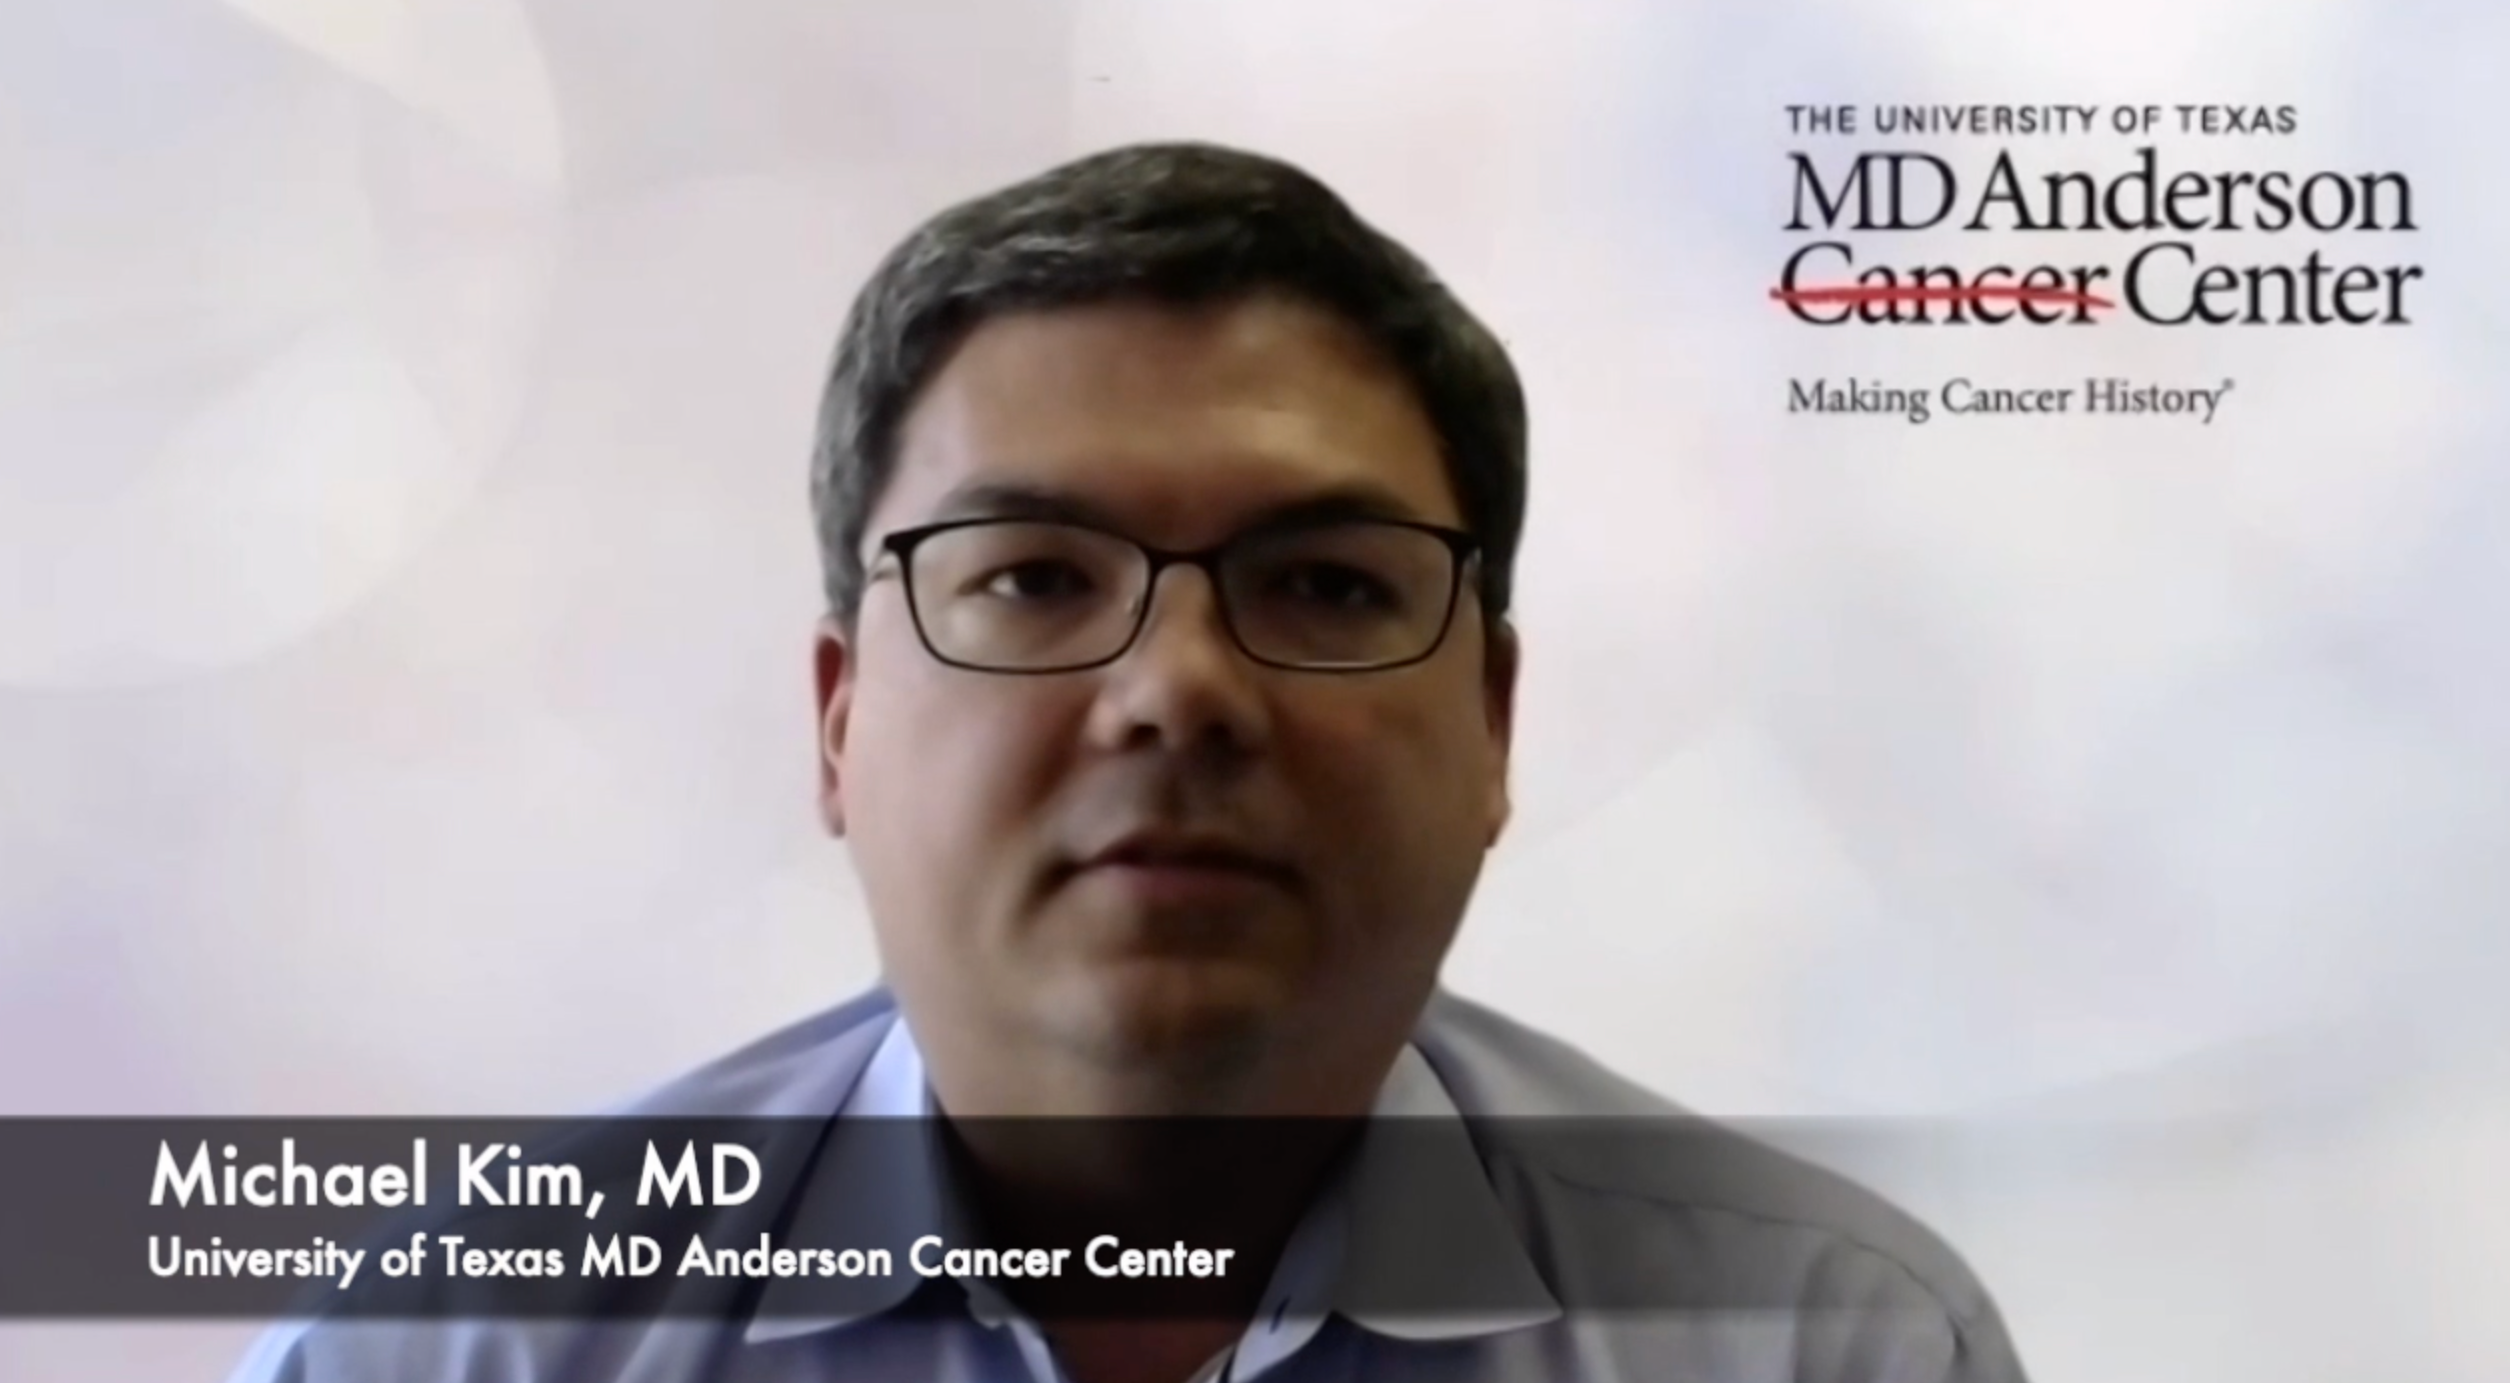 Michael Kim, MD, on Genetics and the Need for New Therapies in Pancreatic Cancer